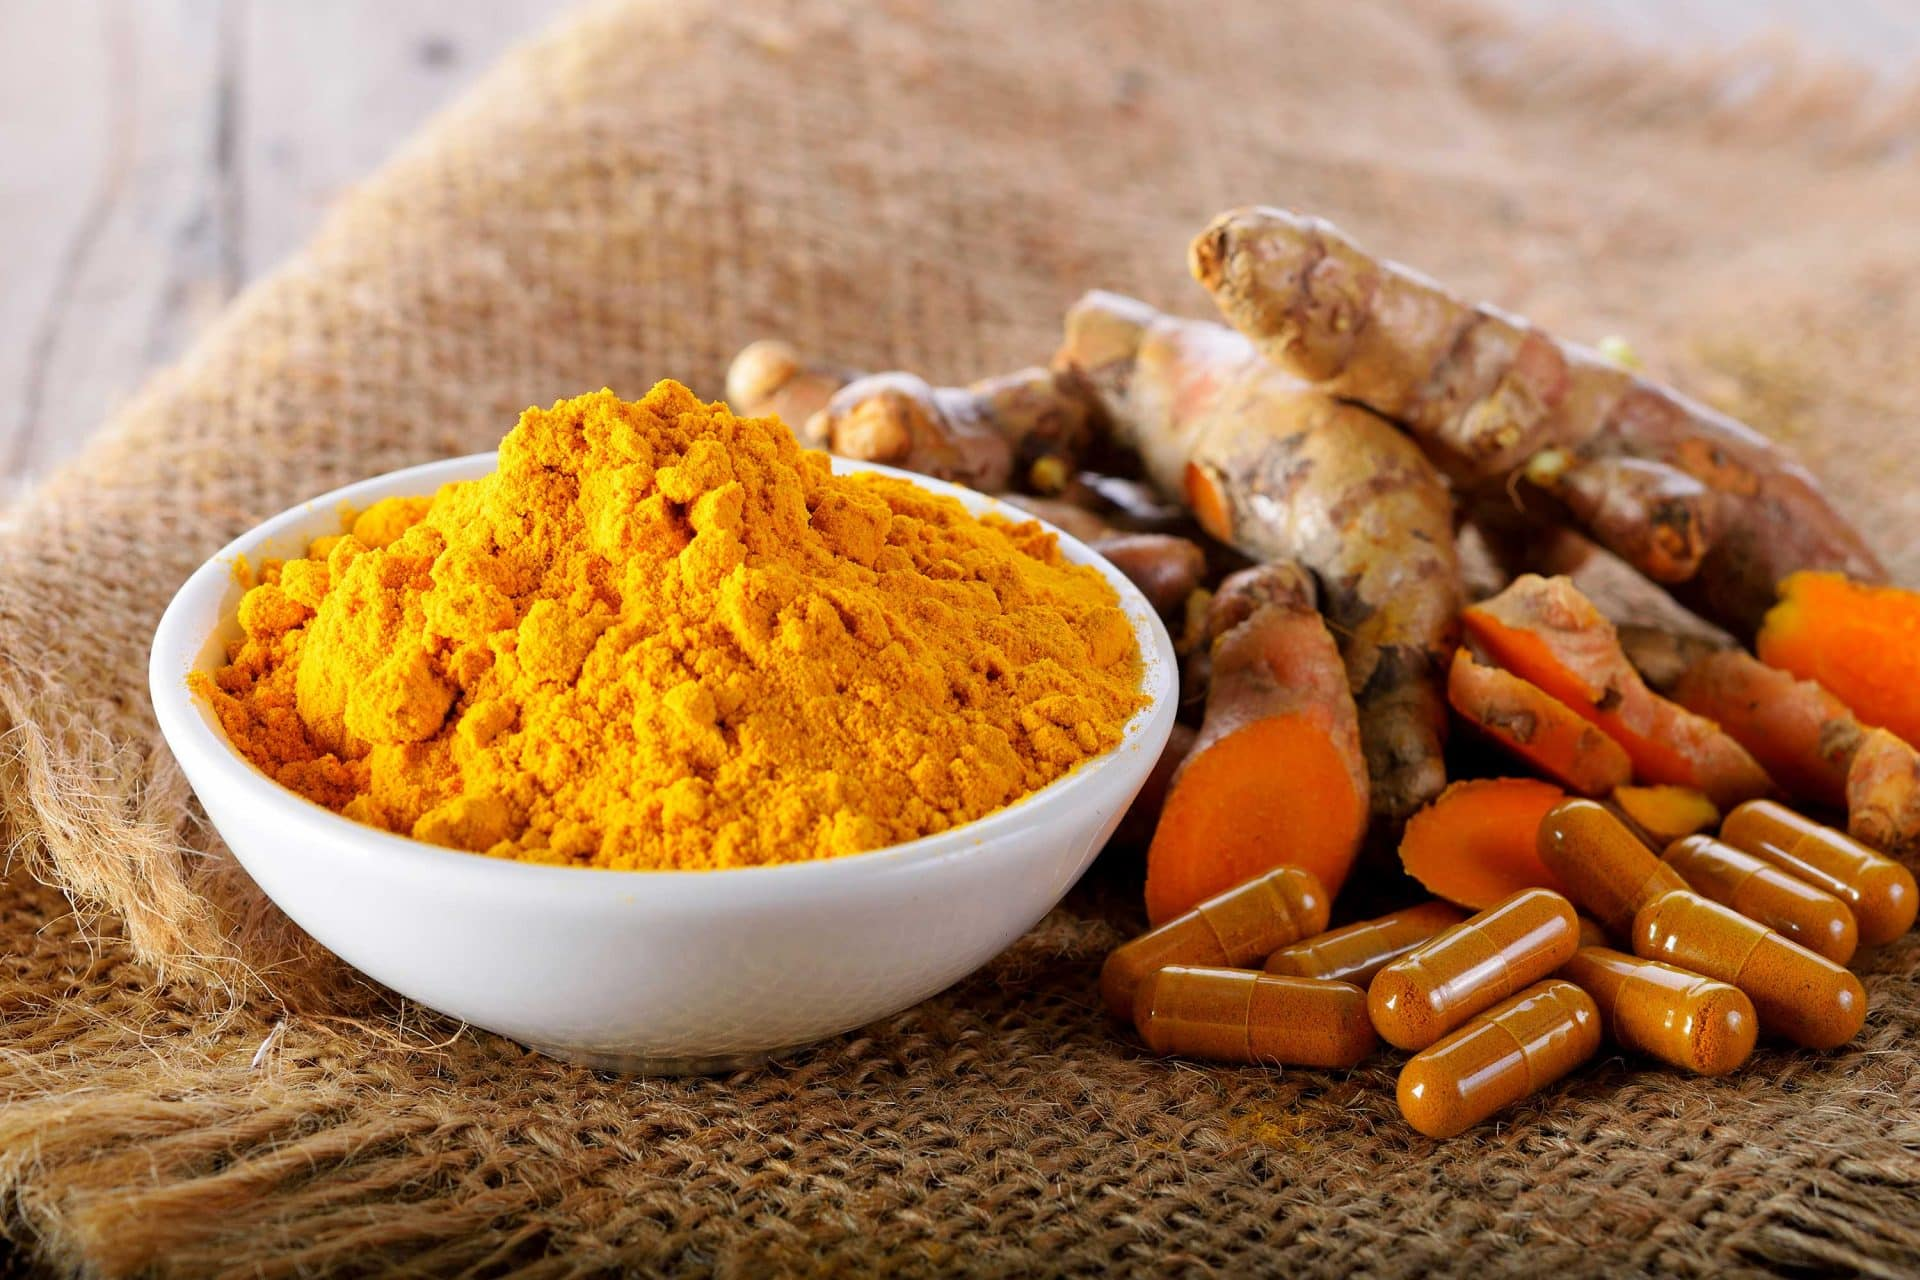 Curcumin has many health benefits.